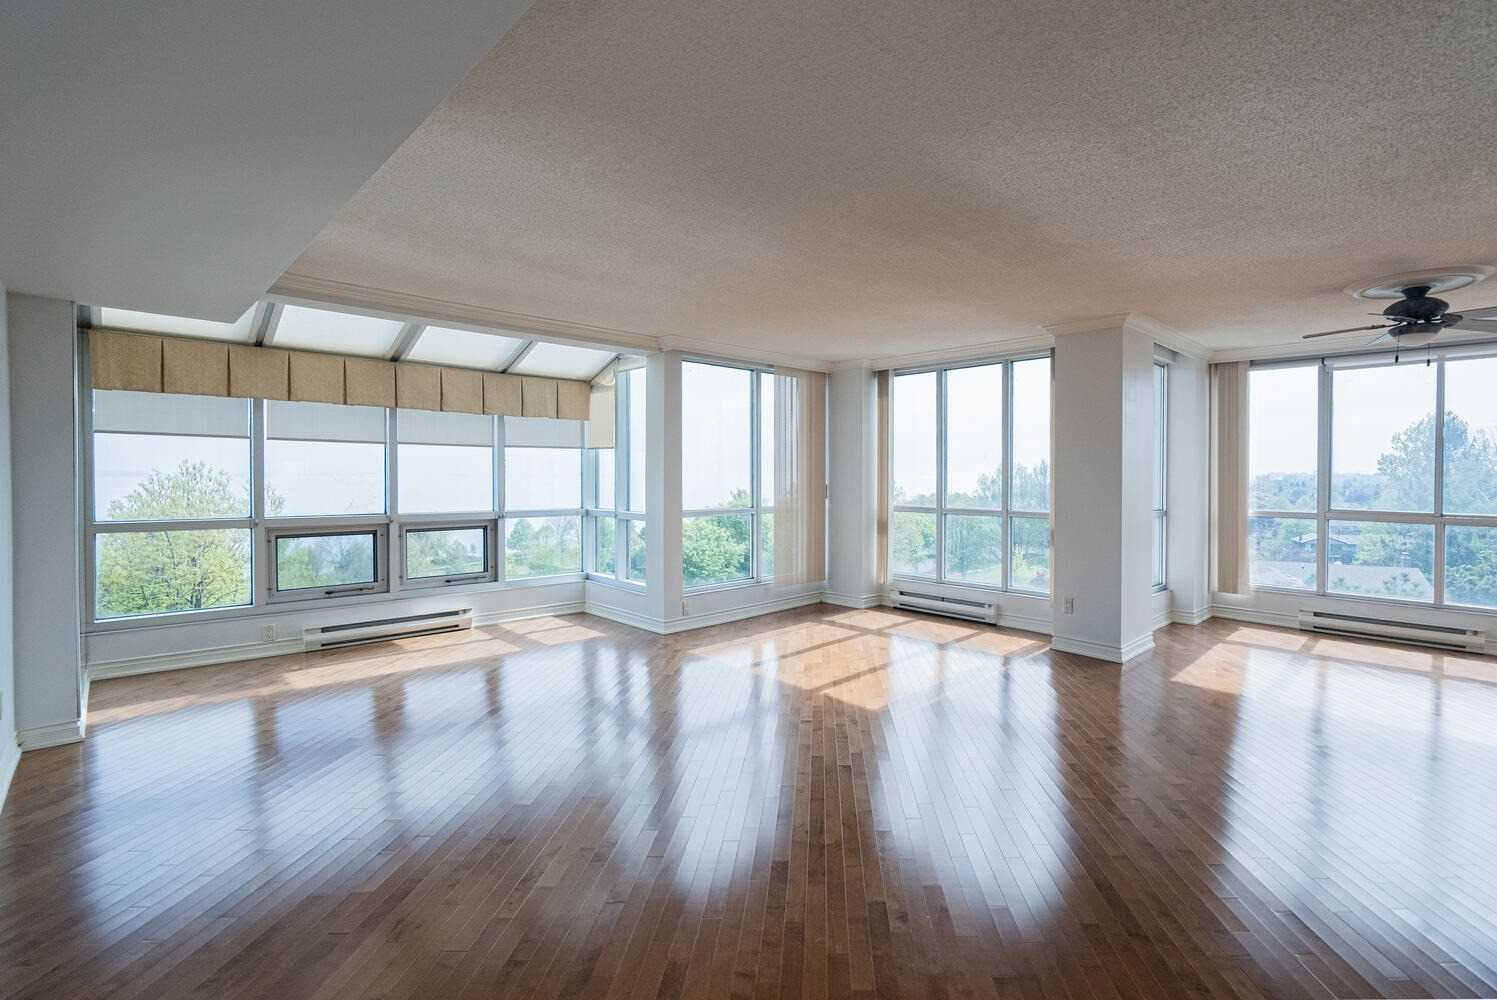 Image 34 of 38 showing inside of 2 Bedroom Condo Apt Apartment for Sale at 70 Cumberland Lane Unit# 503, Ajax L1S7K4